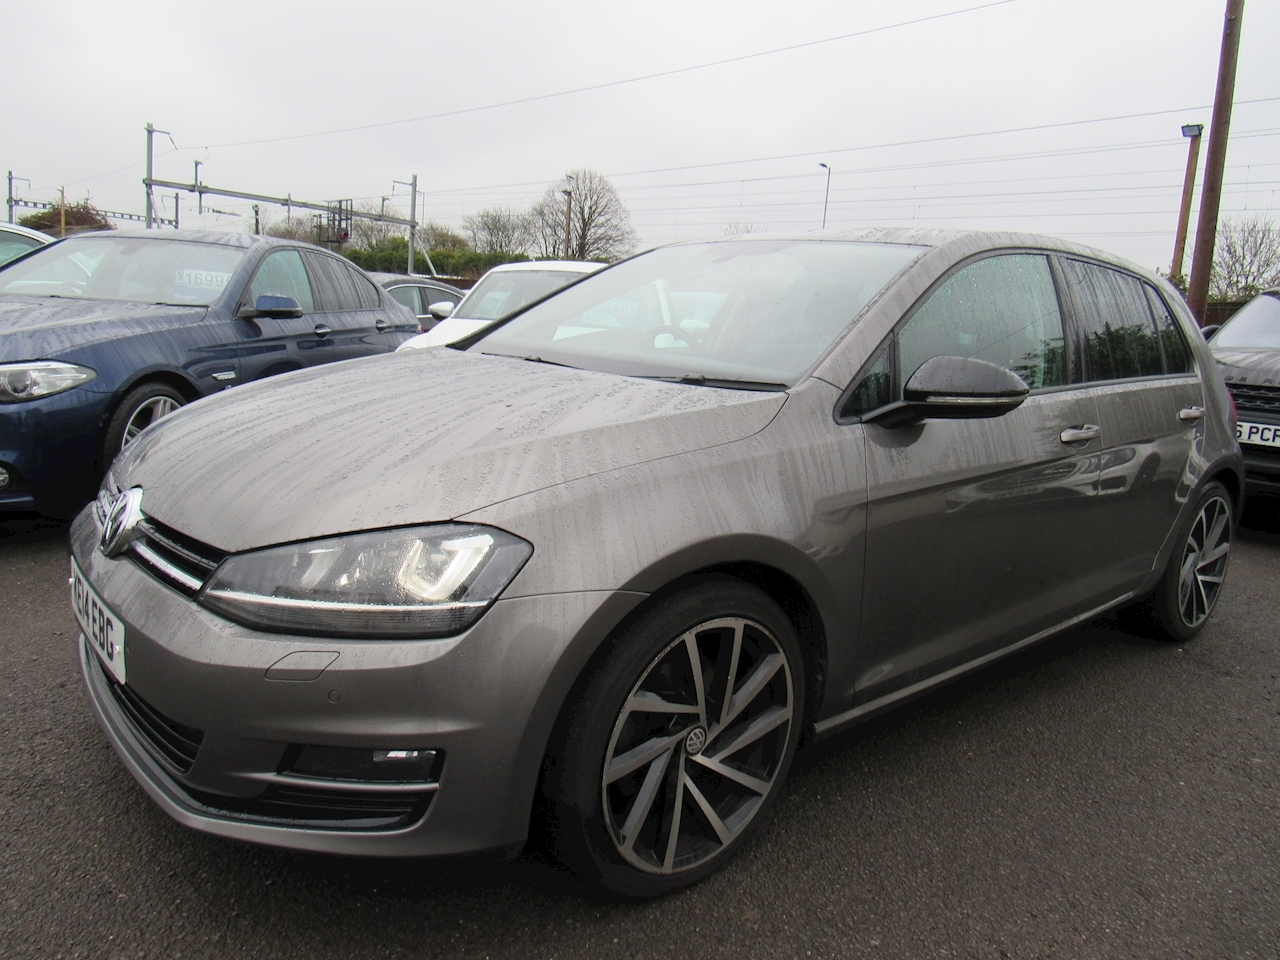 Volkswagen Golf Gt Tsi Act Bluemotion Technology Dsg Hatchback 1.4 Semi Auto Petrol